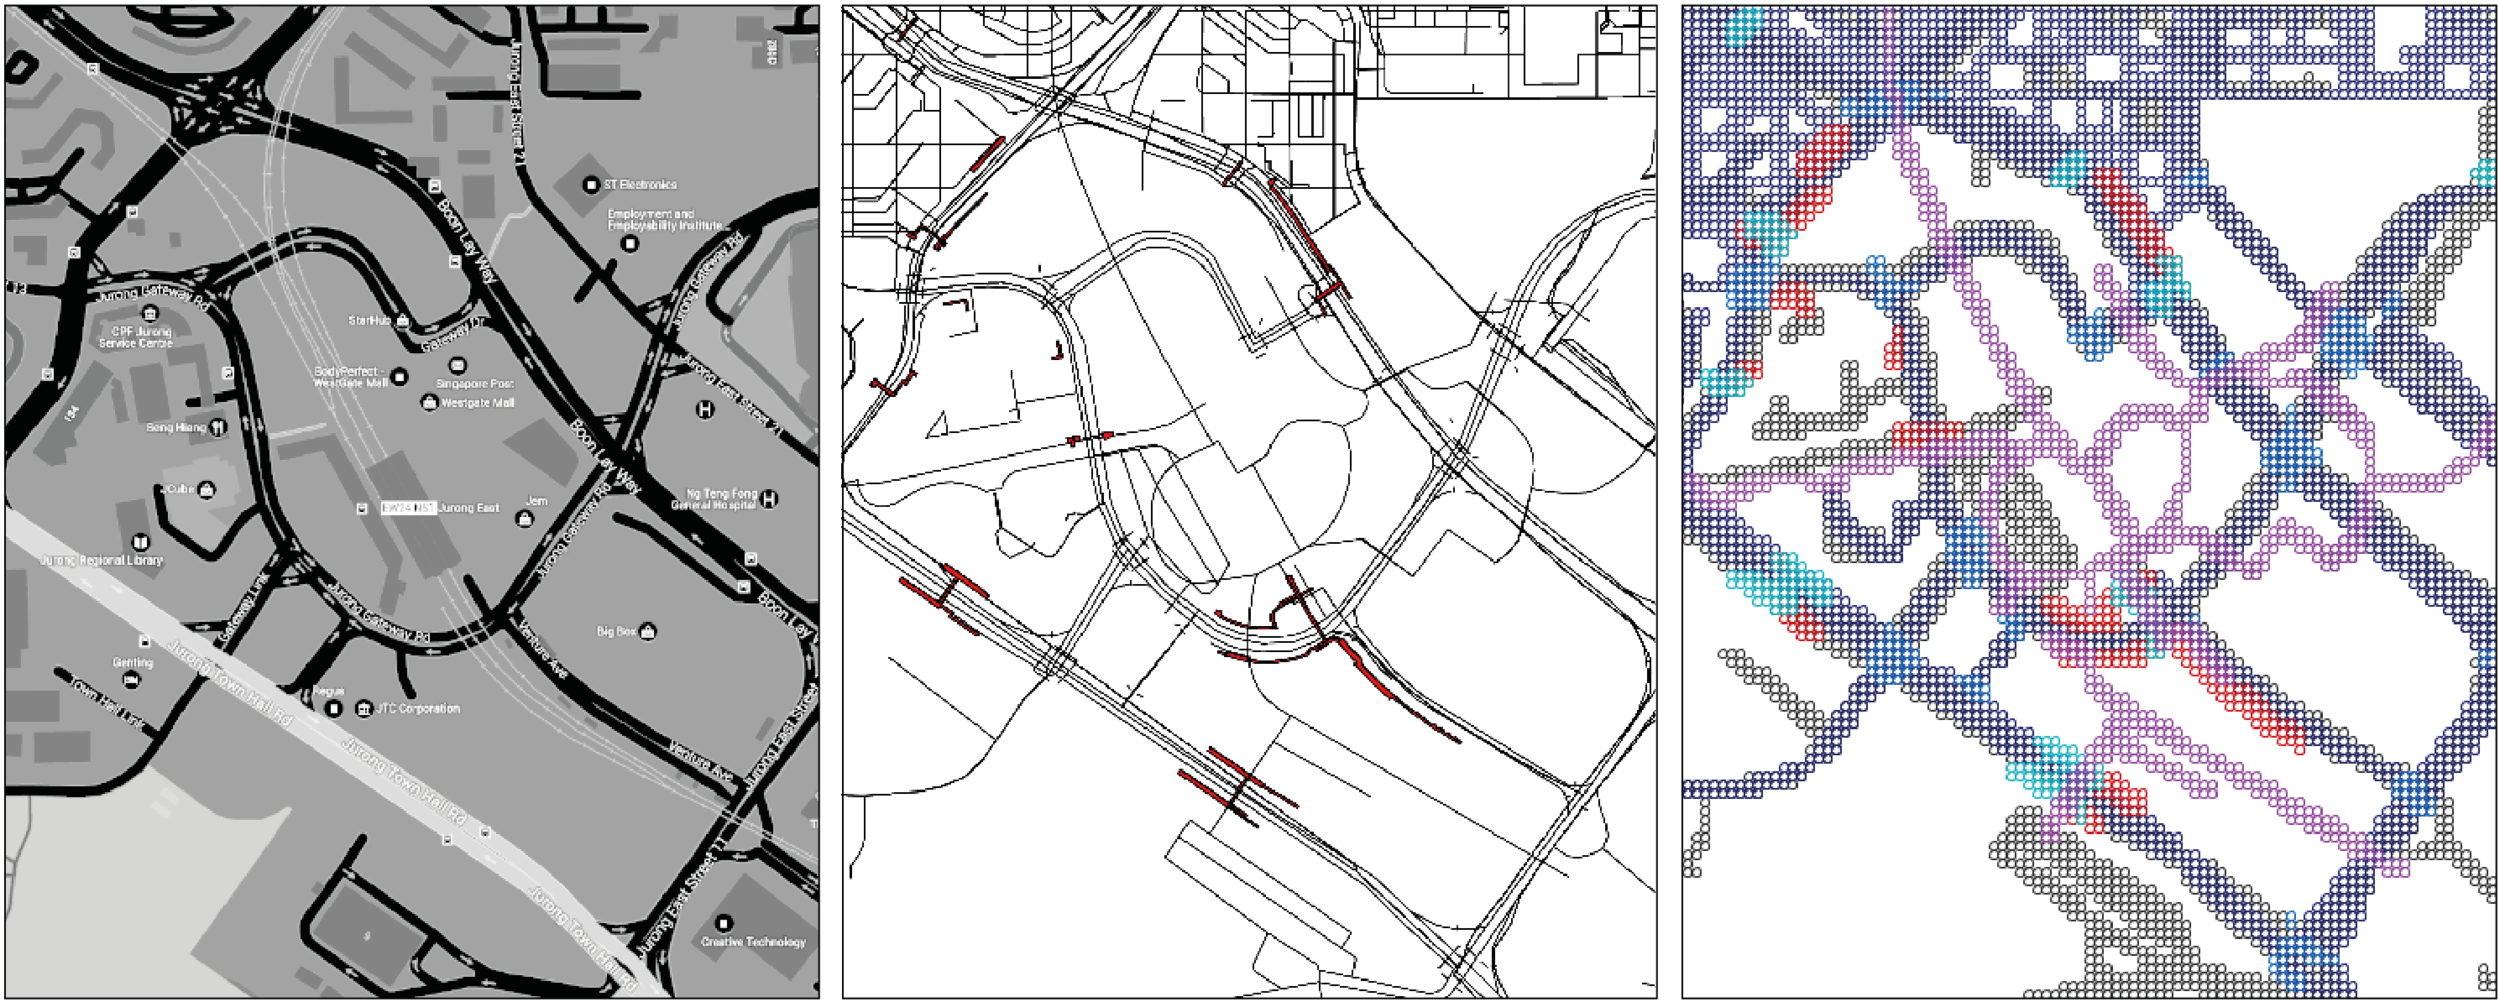 Figure 8b.  GIS Vector data (left) translated into poly-voxel data (right).  The translation differentiates between different path types such as roads, sidewalks, and pedestrian bridges. The purple network is an elevated walkway.